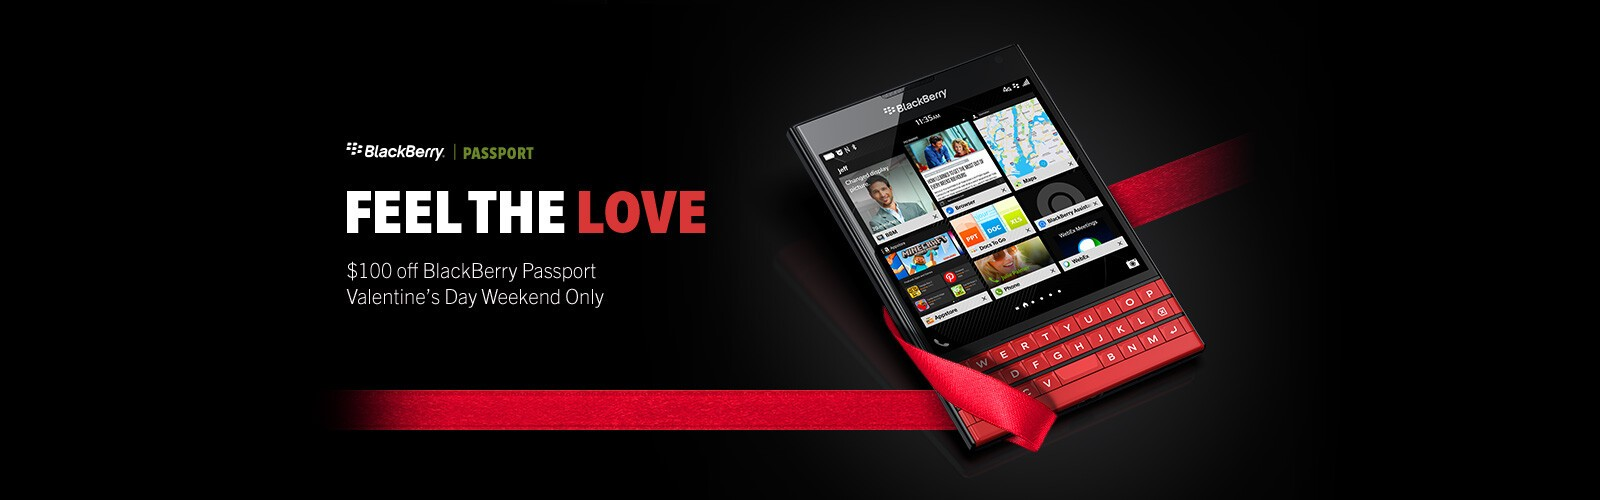 Buy a BlackBerry Passport and save 00 from now until Feb. 16